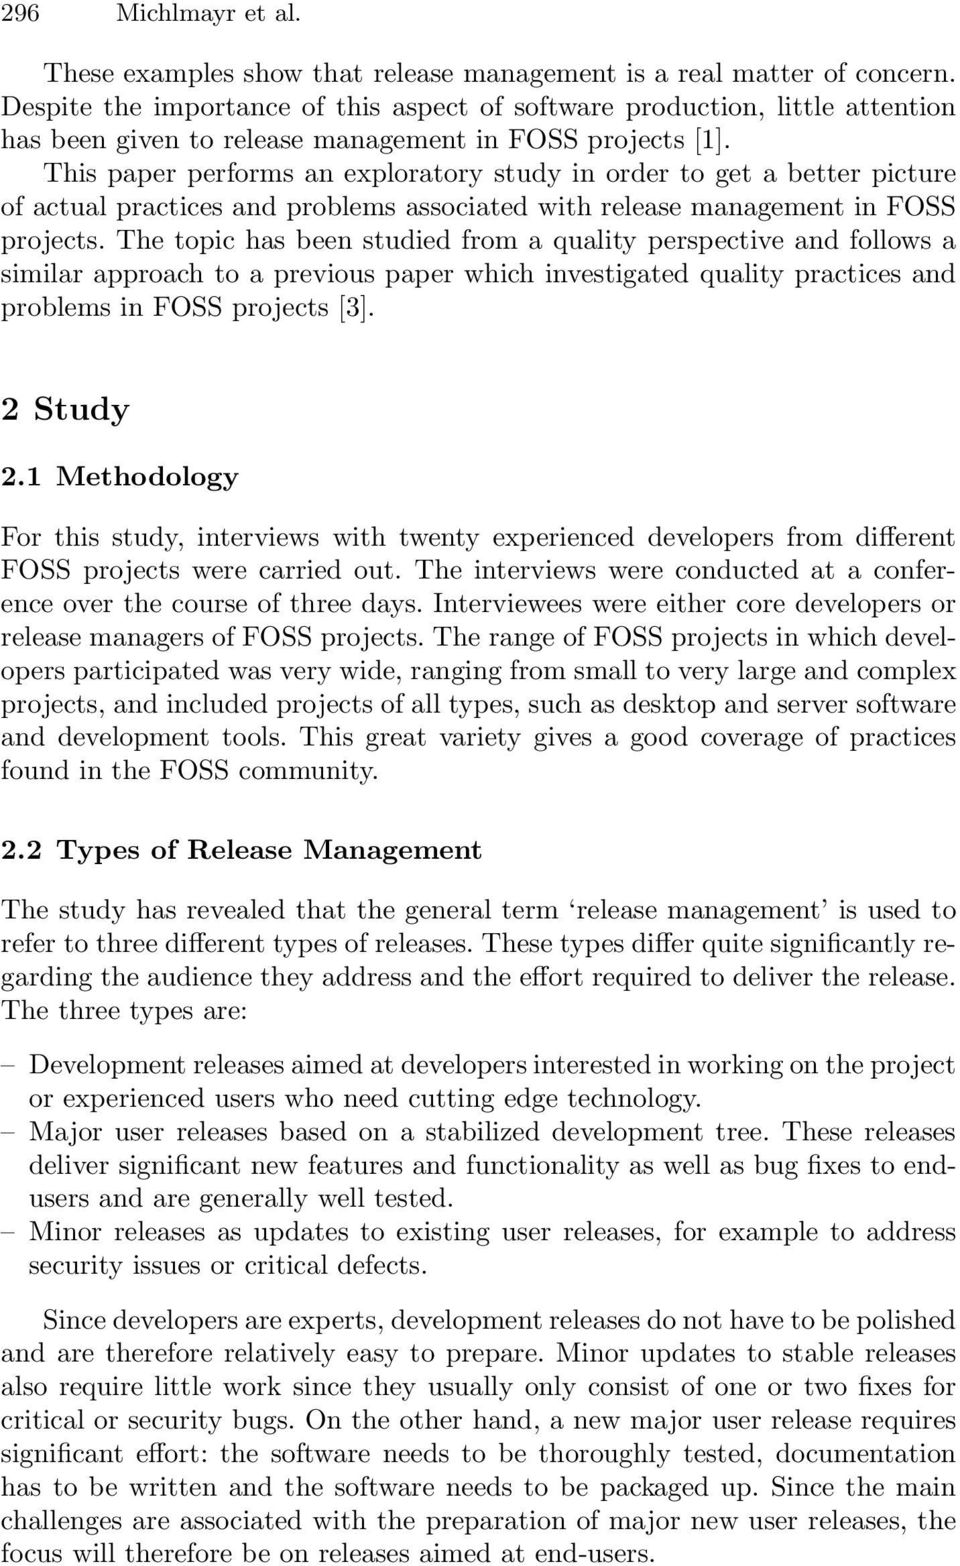 This paper performs an exploratory study in order to get a better picture of actual practices and problems associated with release management in FOSS projects.